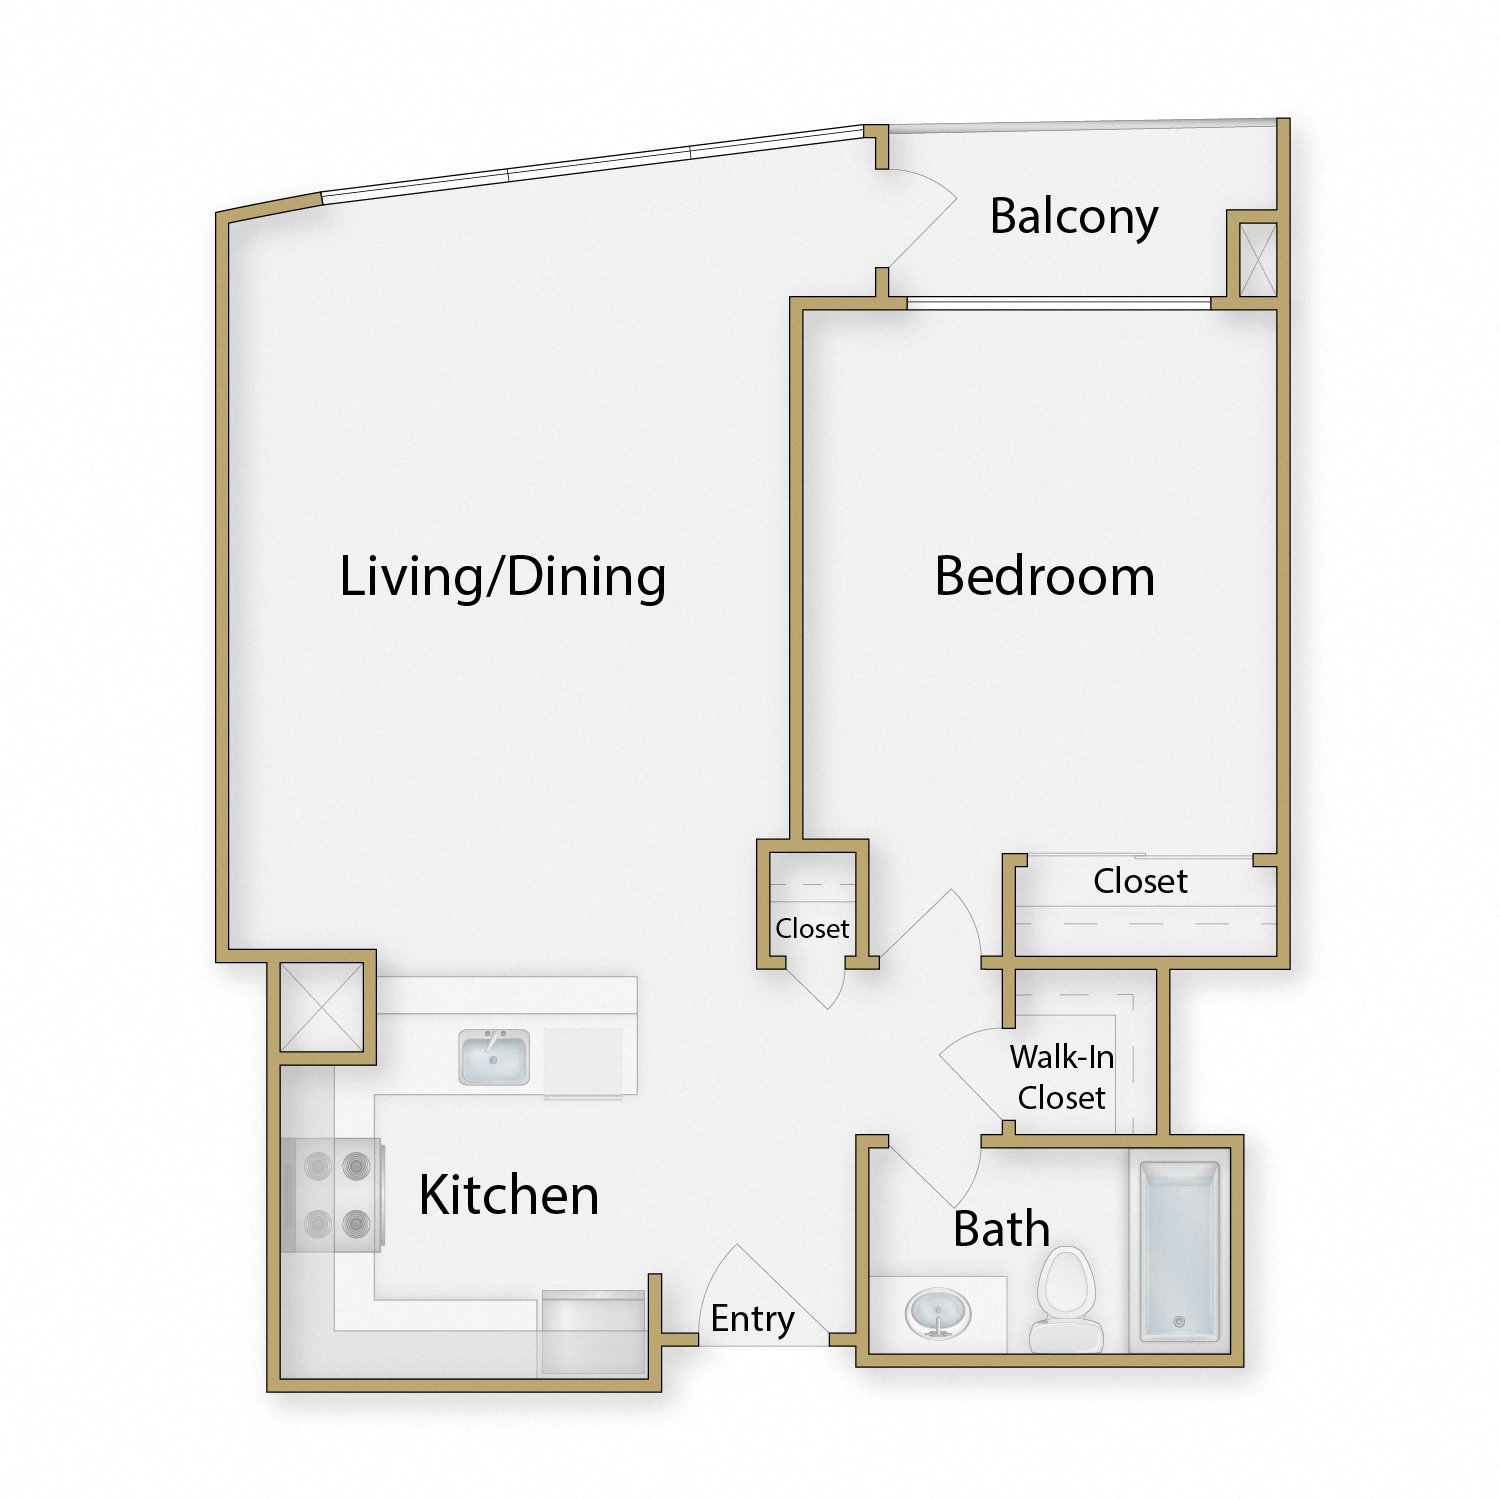 Golden Gate One floor plan diagram. One bedroom, one bathroom, an open kitchen dining and living area, and a balcony.